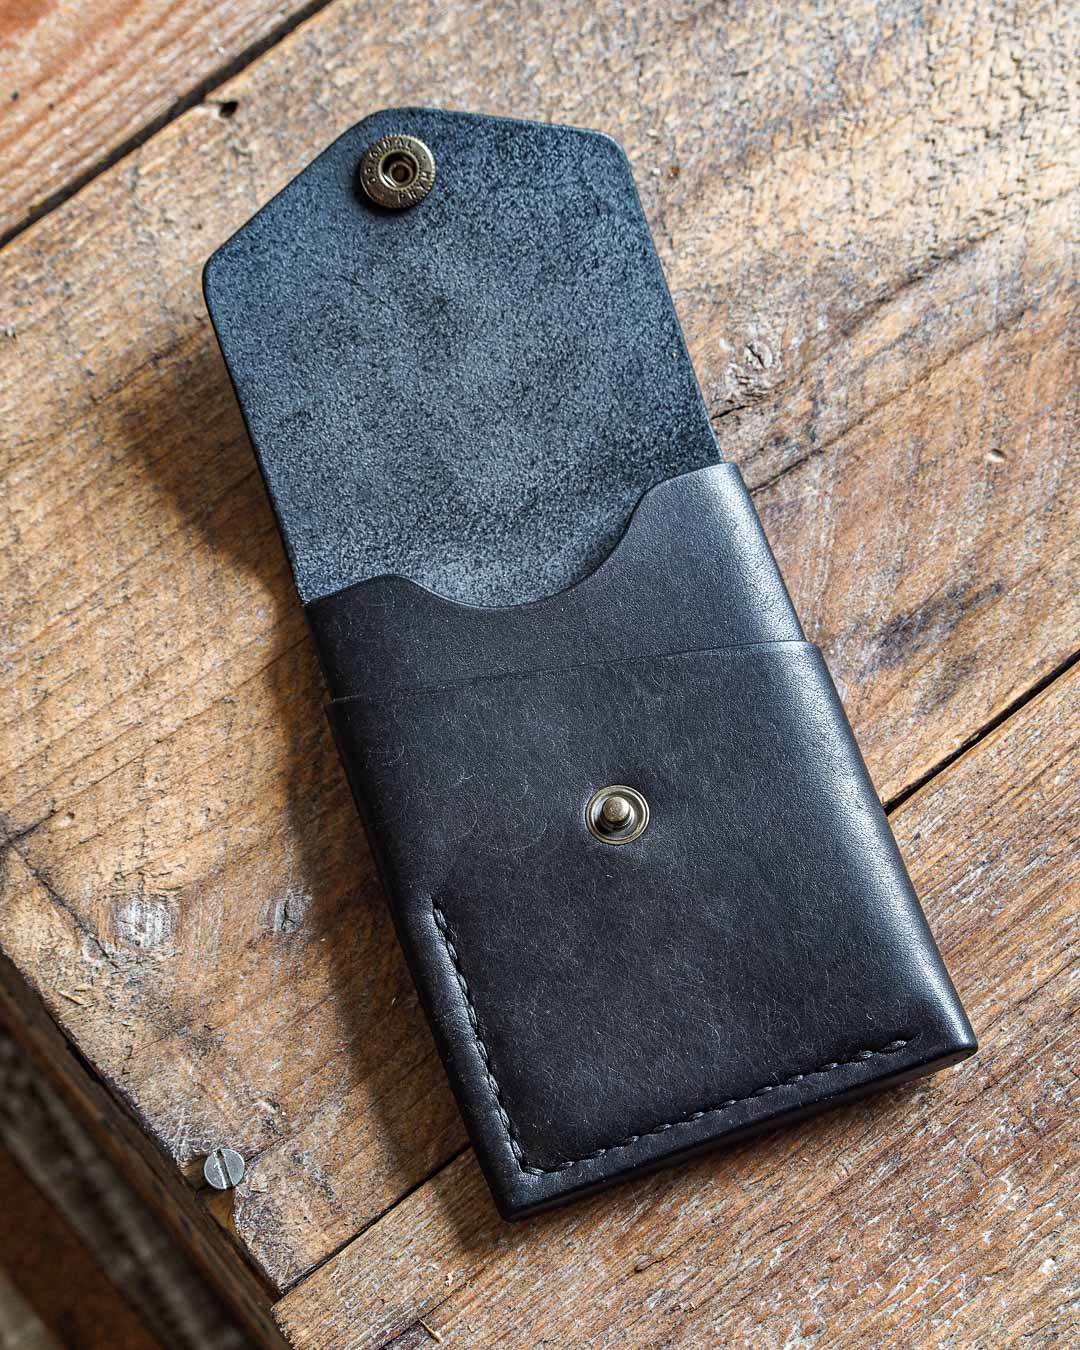 Luava handmade leather wallet handcrafted card holder cardholder made in finland overfold pueblo black front open